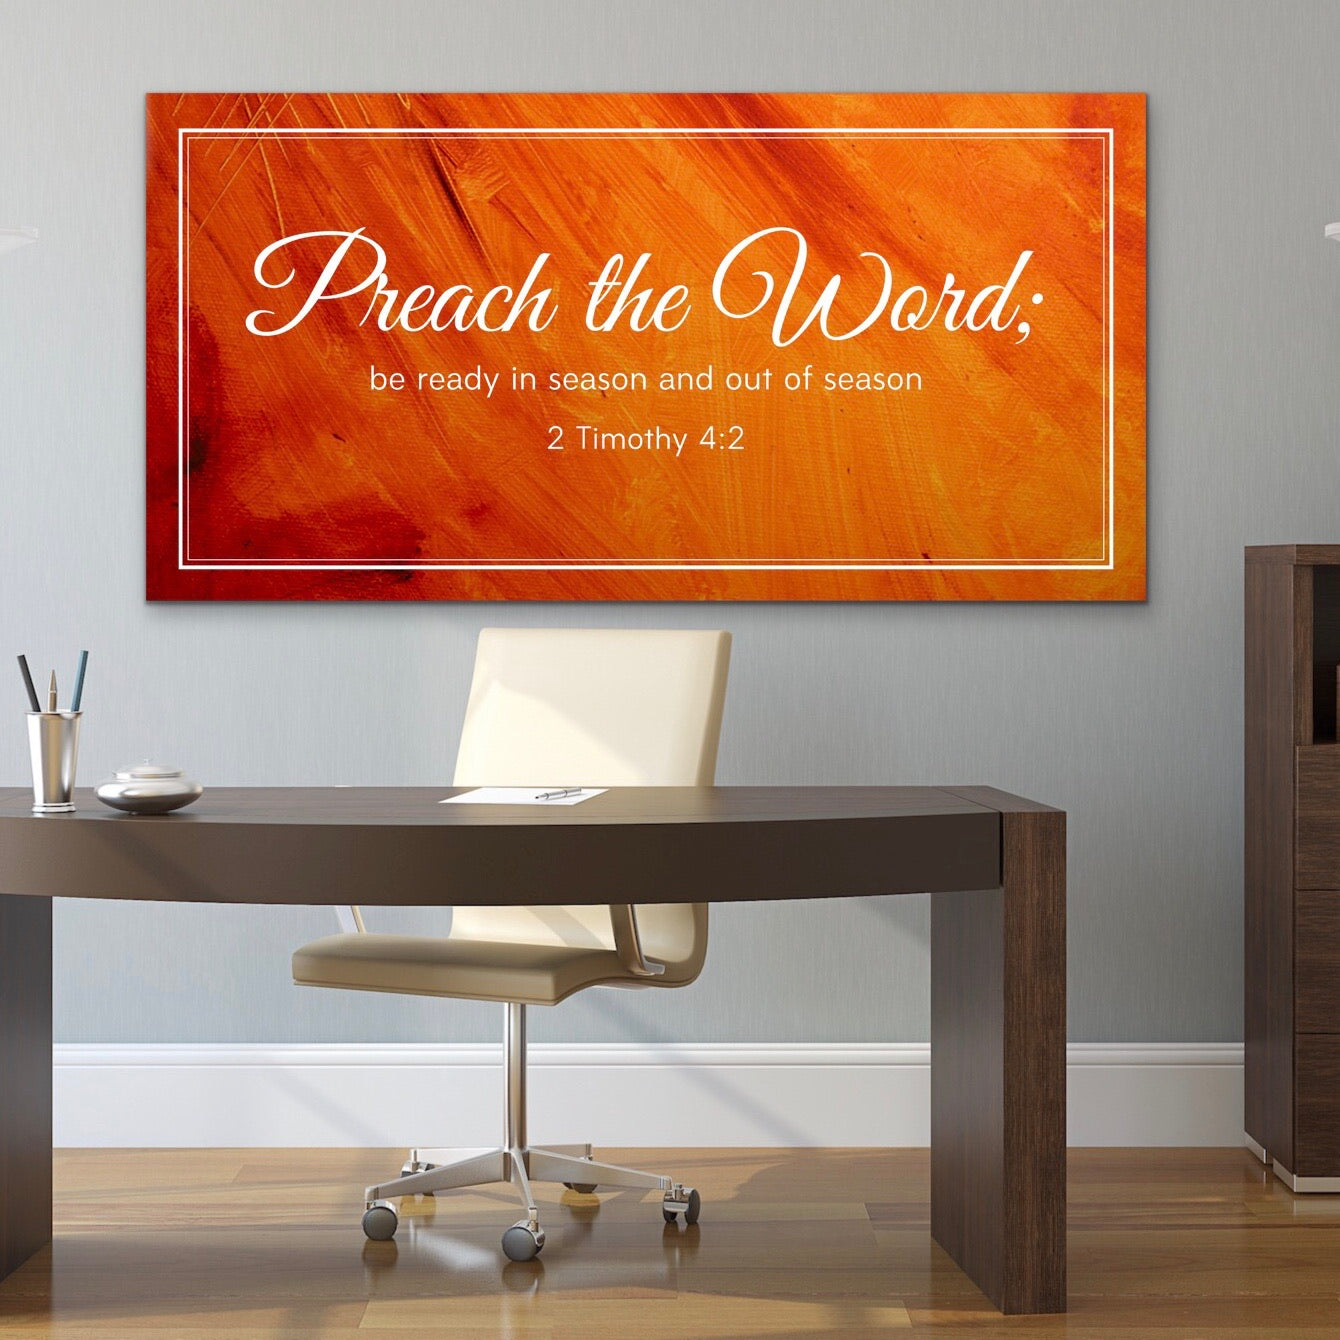 Christian Wall Art: Preach the Word (Wood Frame Ready to Hang)